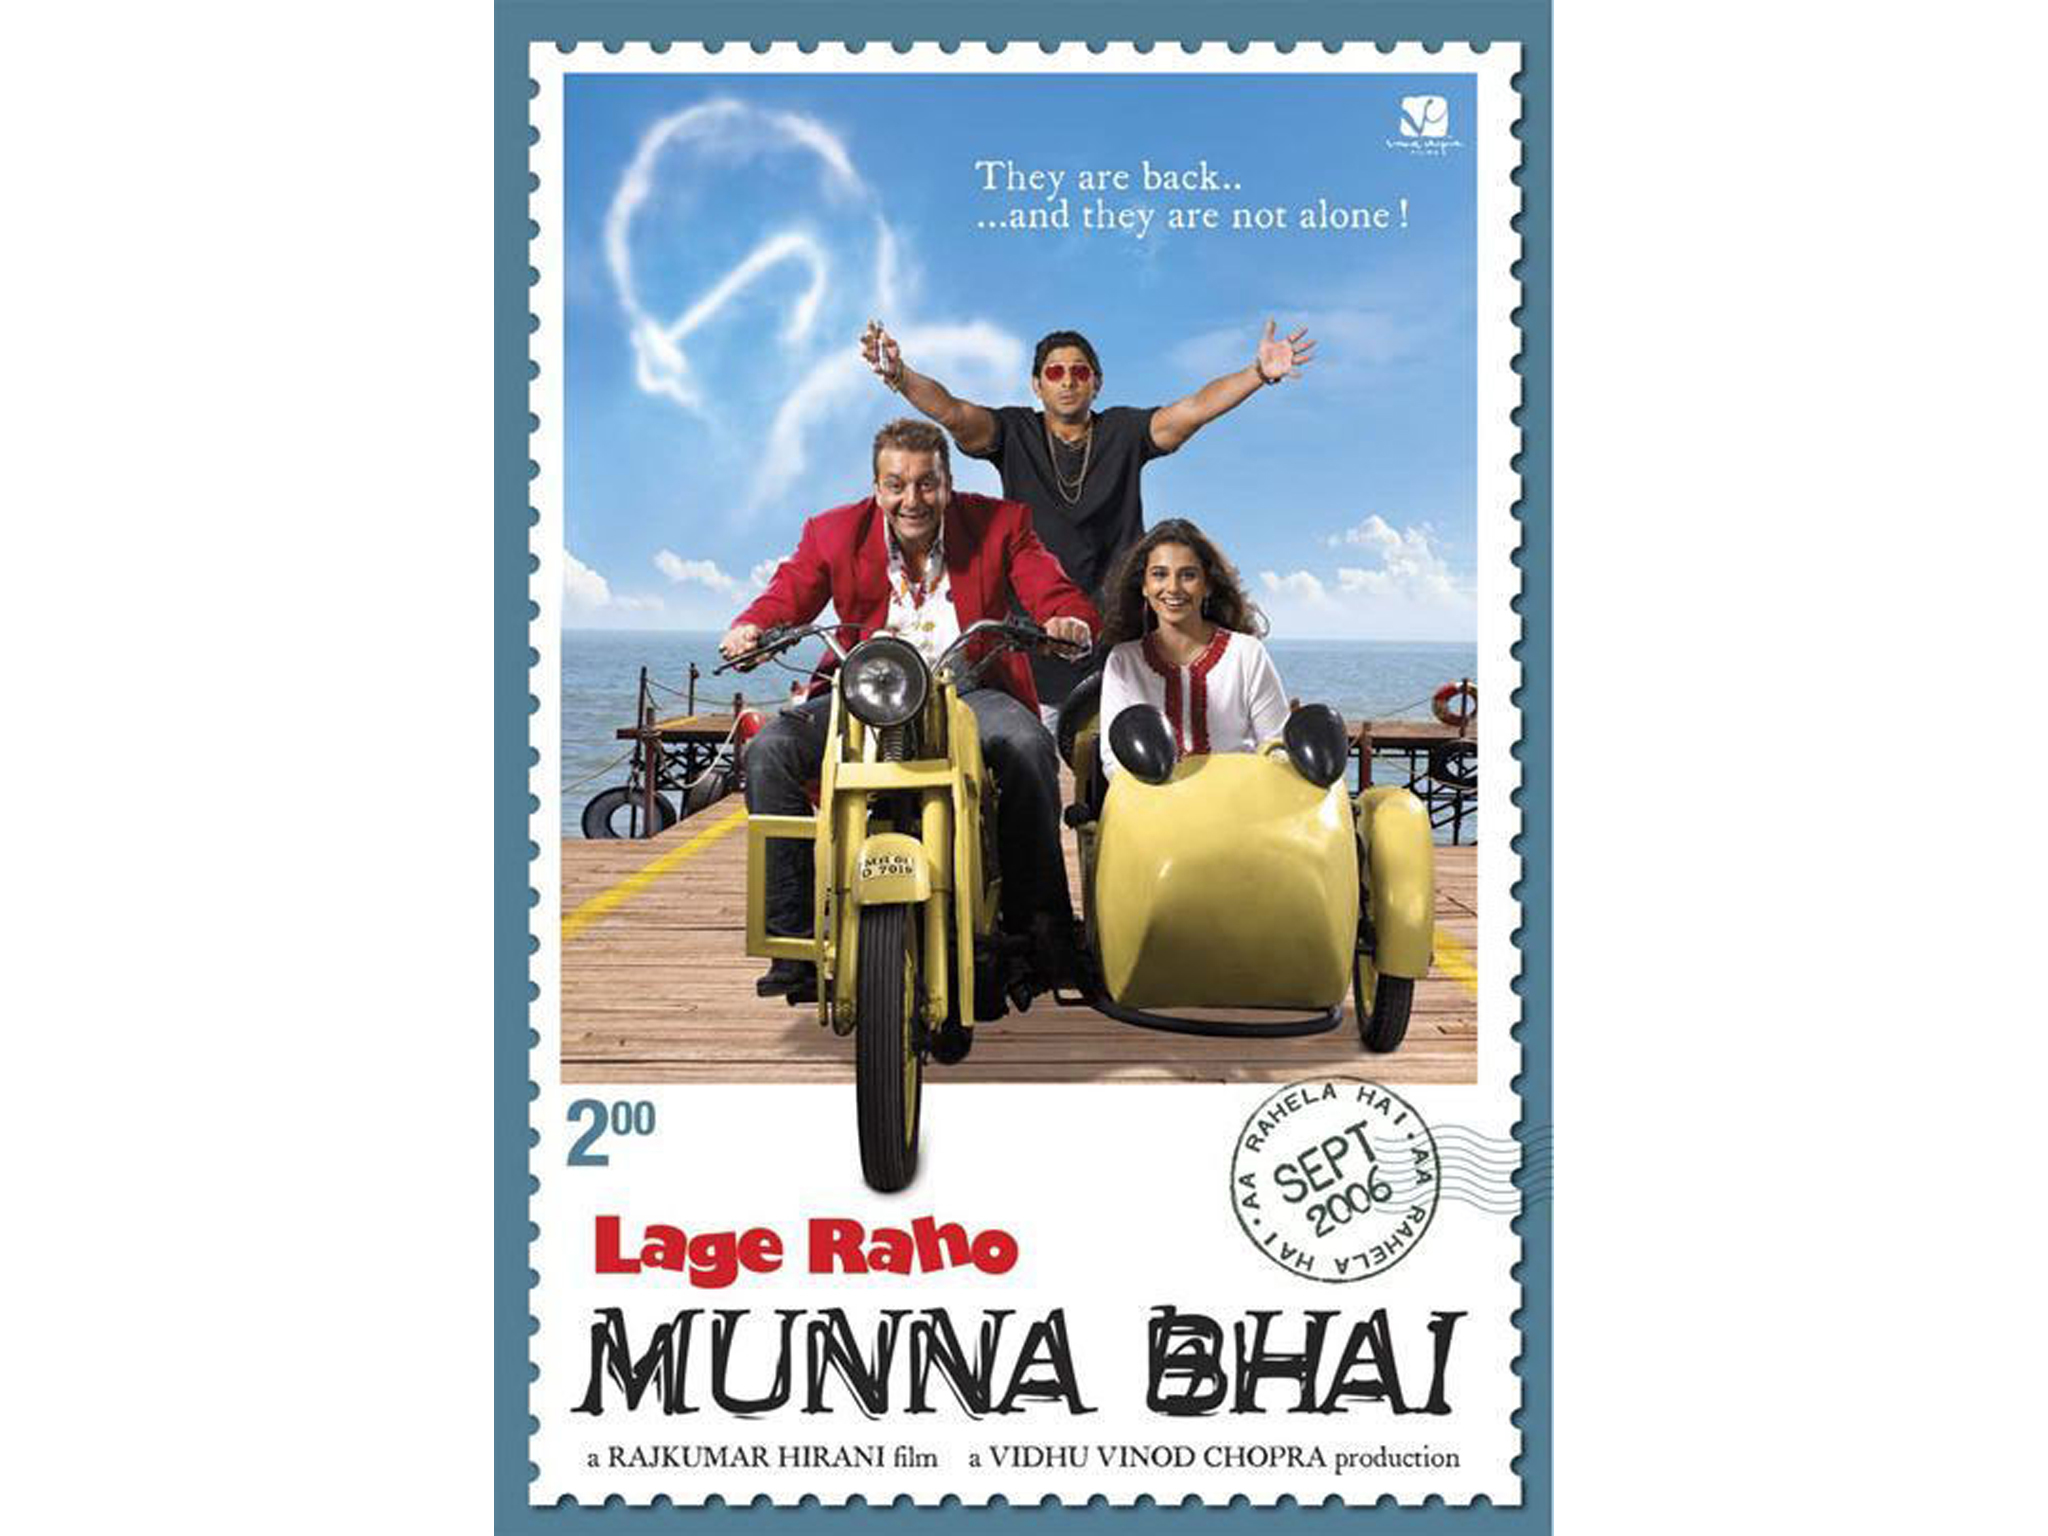 Hindi movie: Lage Raho Munna Bhai